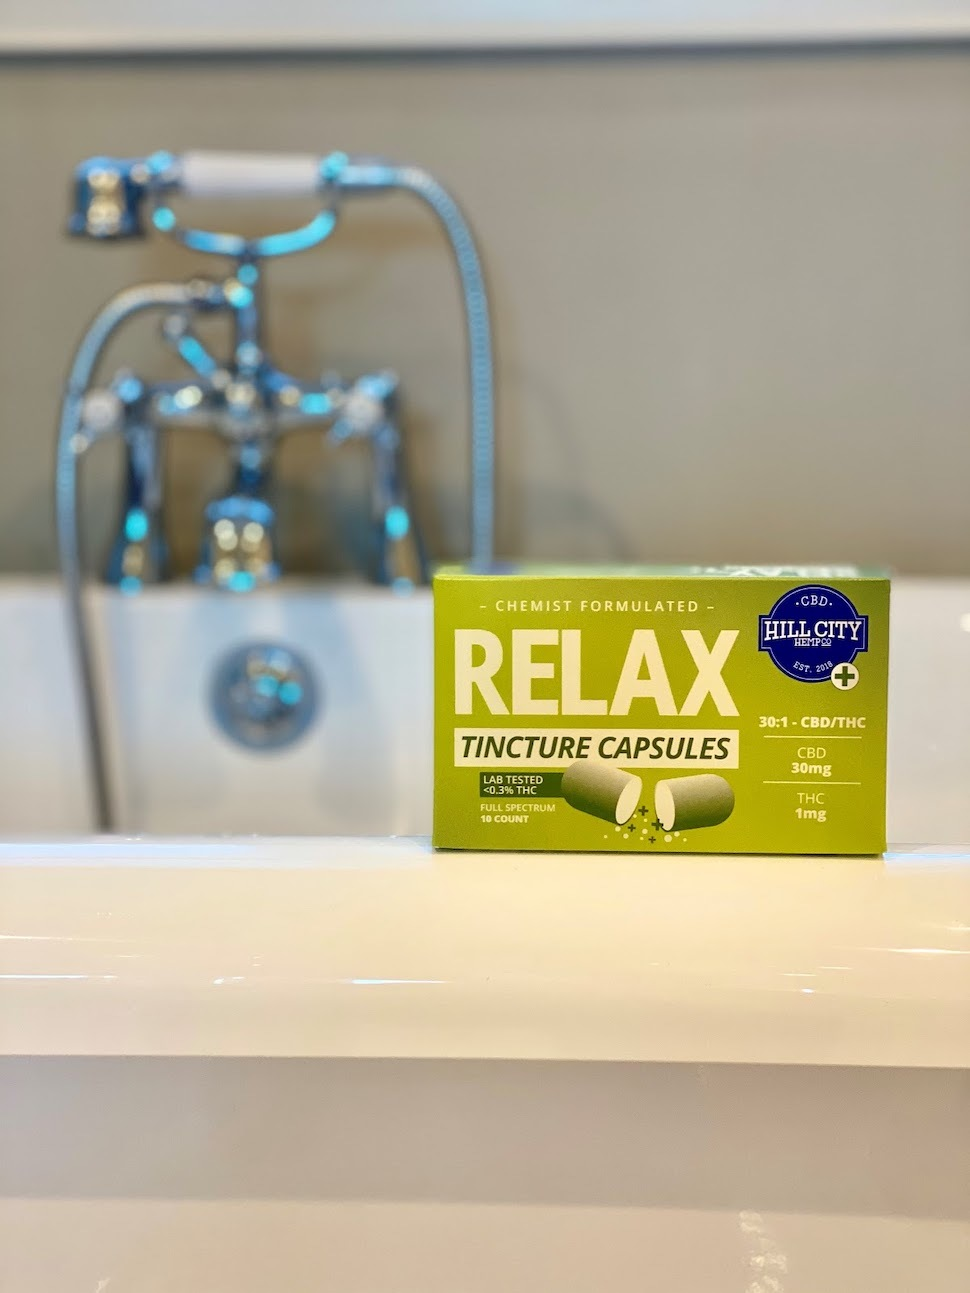 Box of Relax Tincture Capsules sitting on the edge of a sink